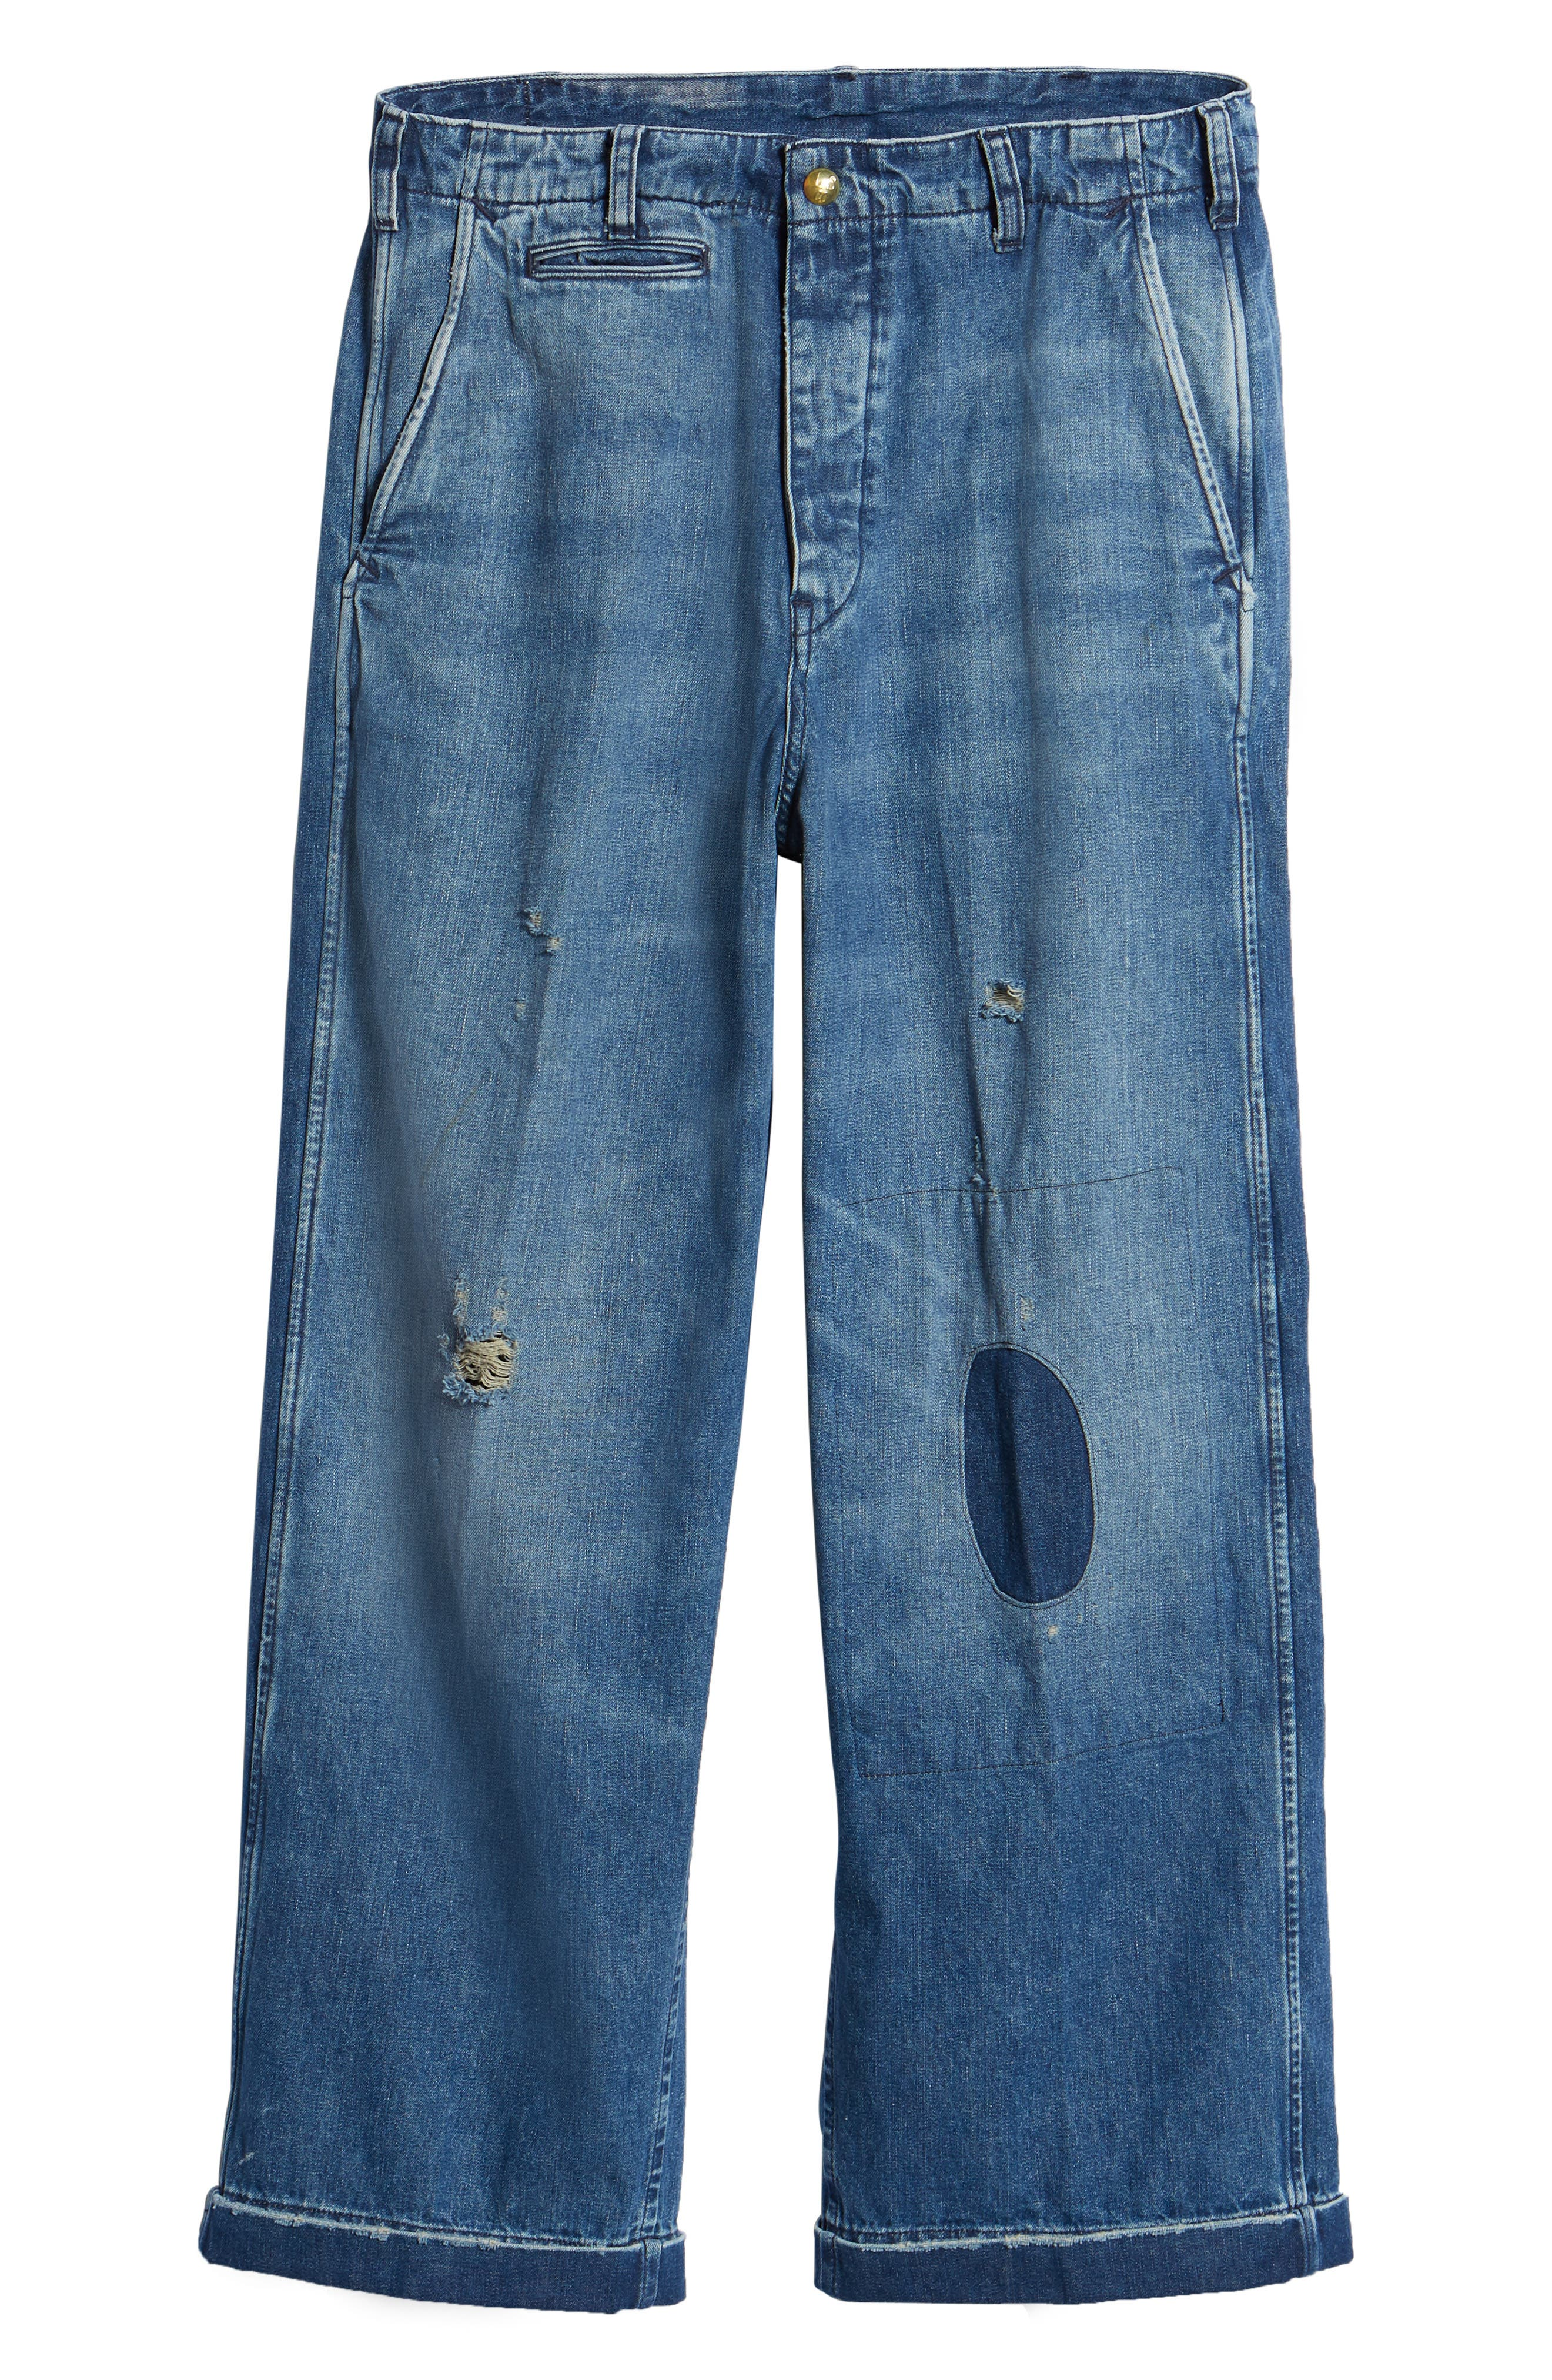 1920s Balloon Jeans,                             Alternate thumbnail 6, color,                             420